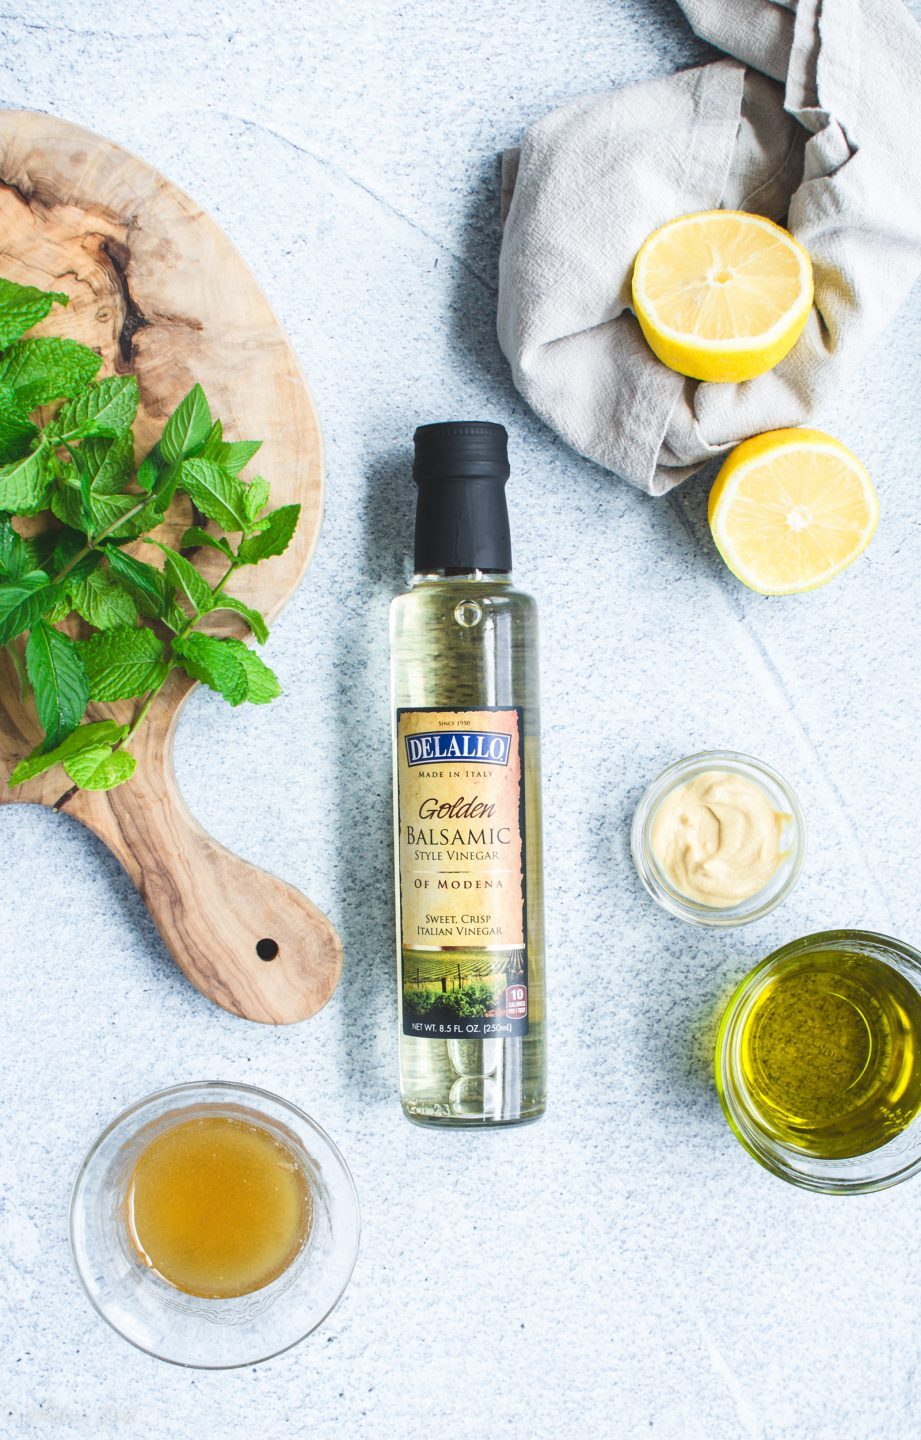 A bottle of Delallo white balsamic vinegar with ingredients for fresh mint vinaigrette on the side.